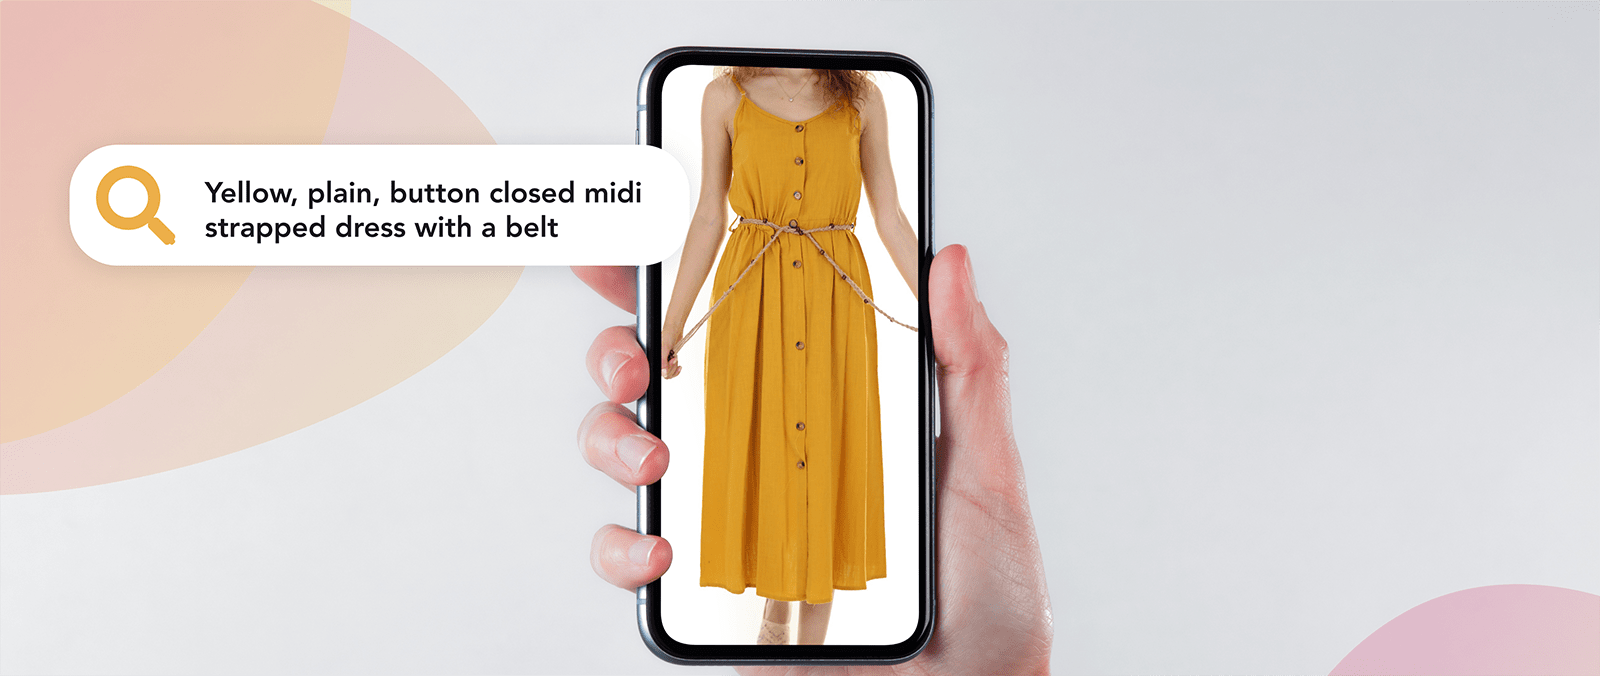 A woman holding a phone looking at a yellow plain dress